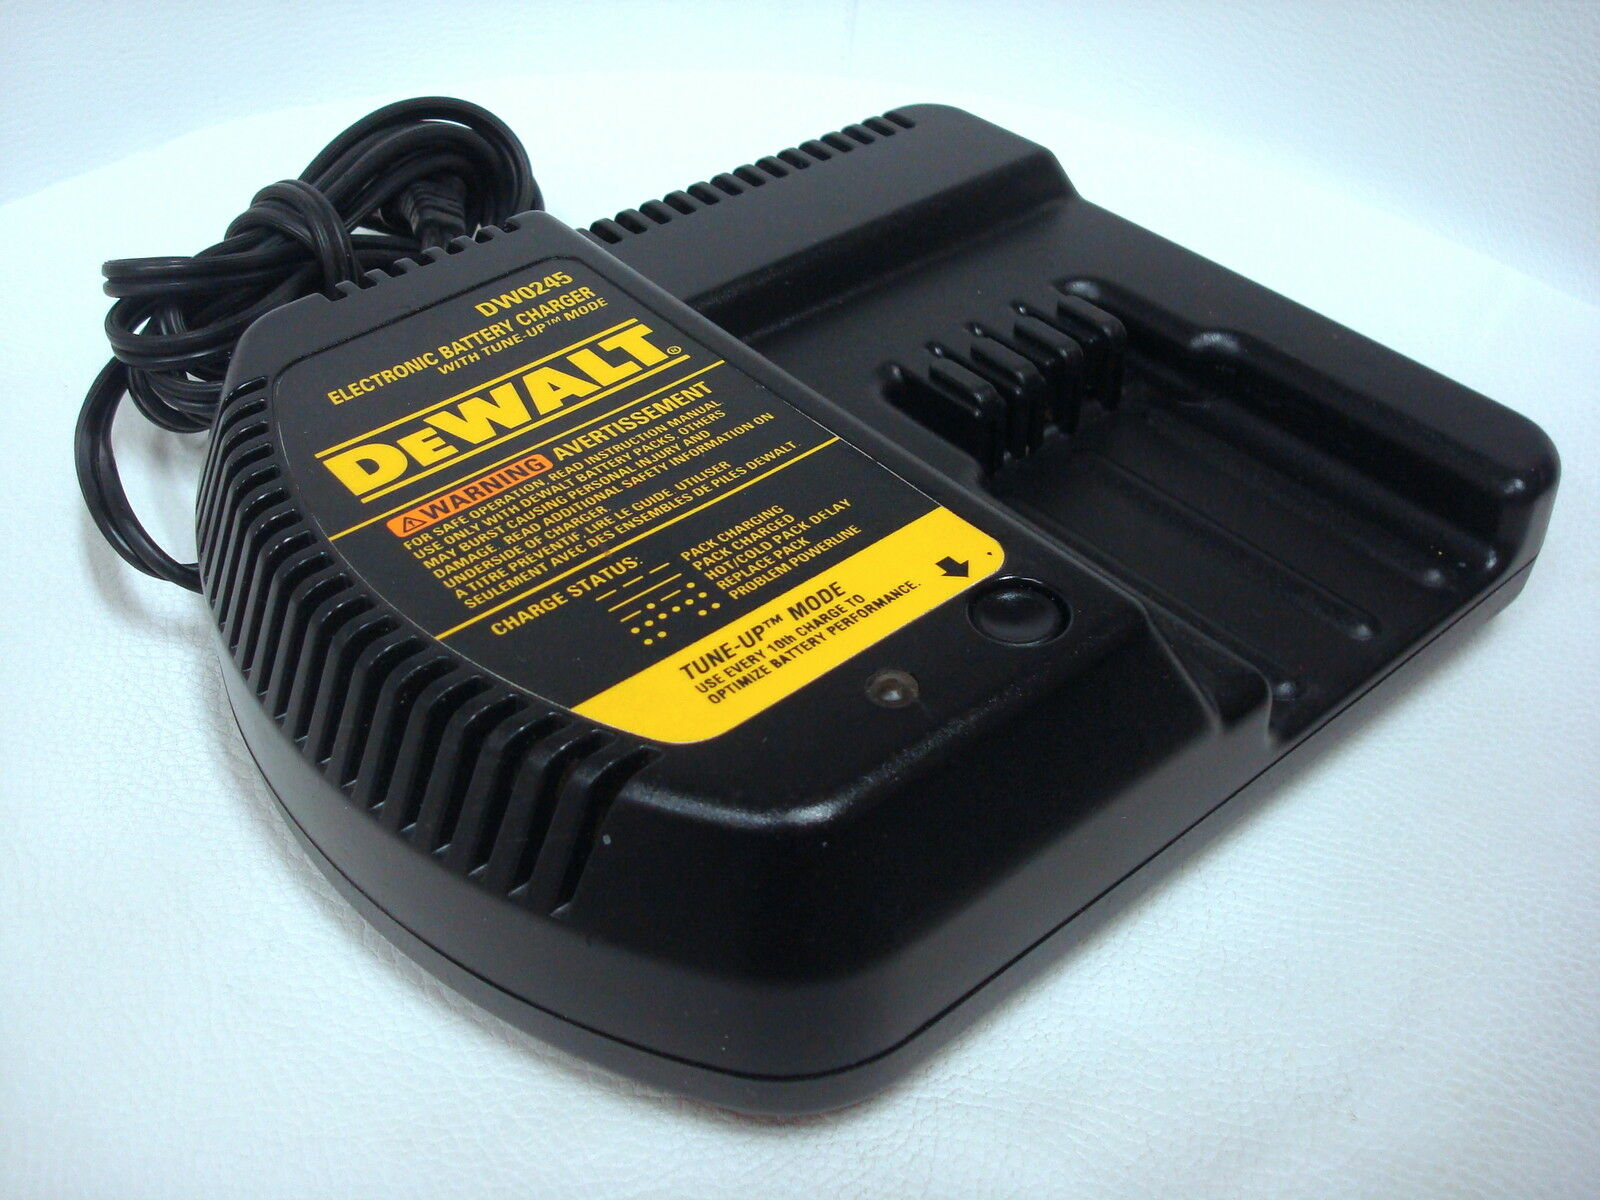 DeWalt Genuine DW0245 24V Battery Charger for DW0240 DW0242 DW0246 Stryker +++